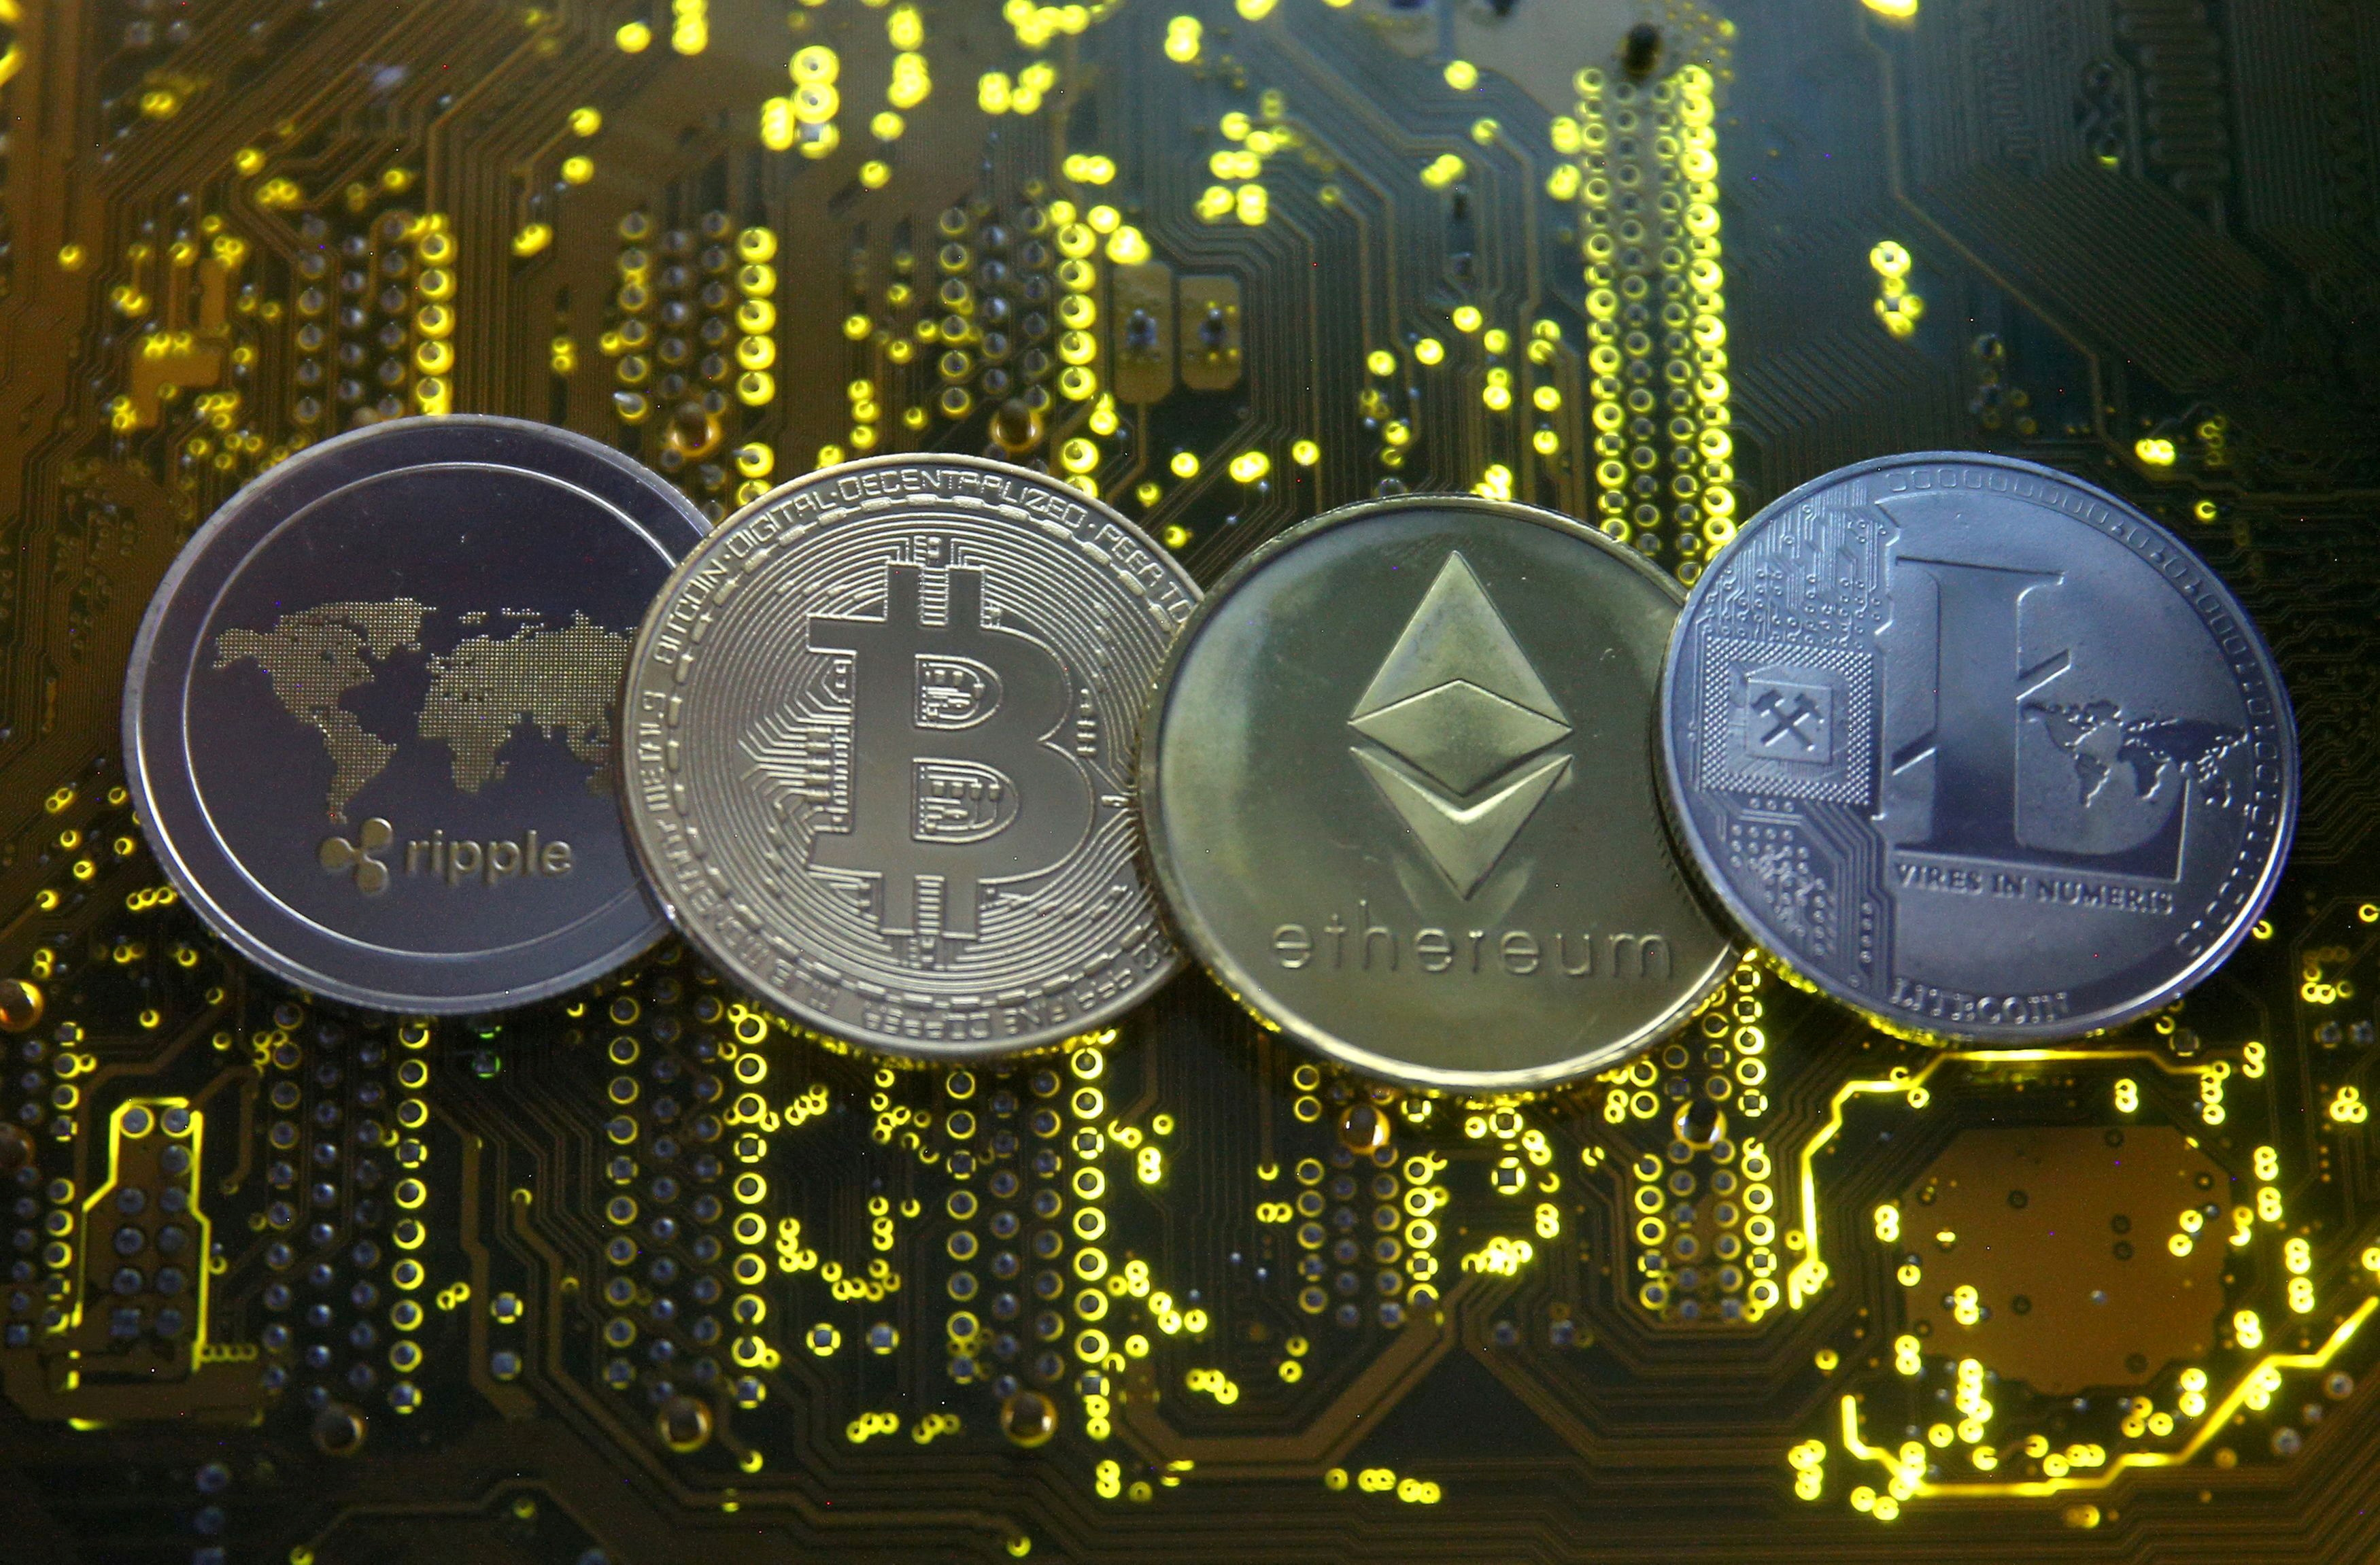 Representations of the Ripple, bitcoin, etherum and Litecoin virtual currencies are seen on a PC motherboard in this illustration picture, February 14, 2018. REUTERS/Dado Ruvic/Illustration